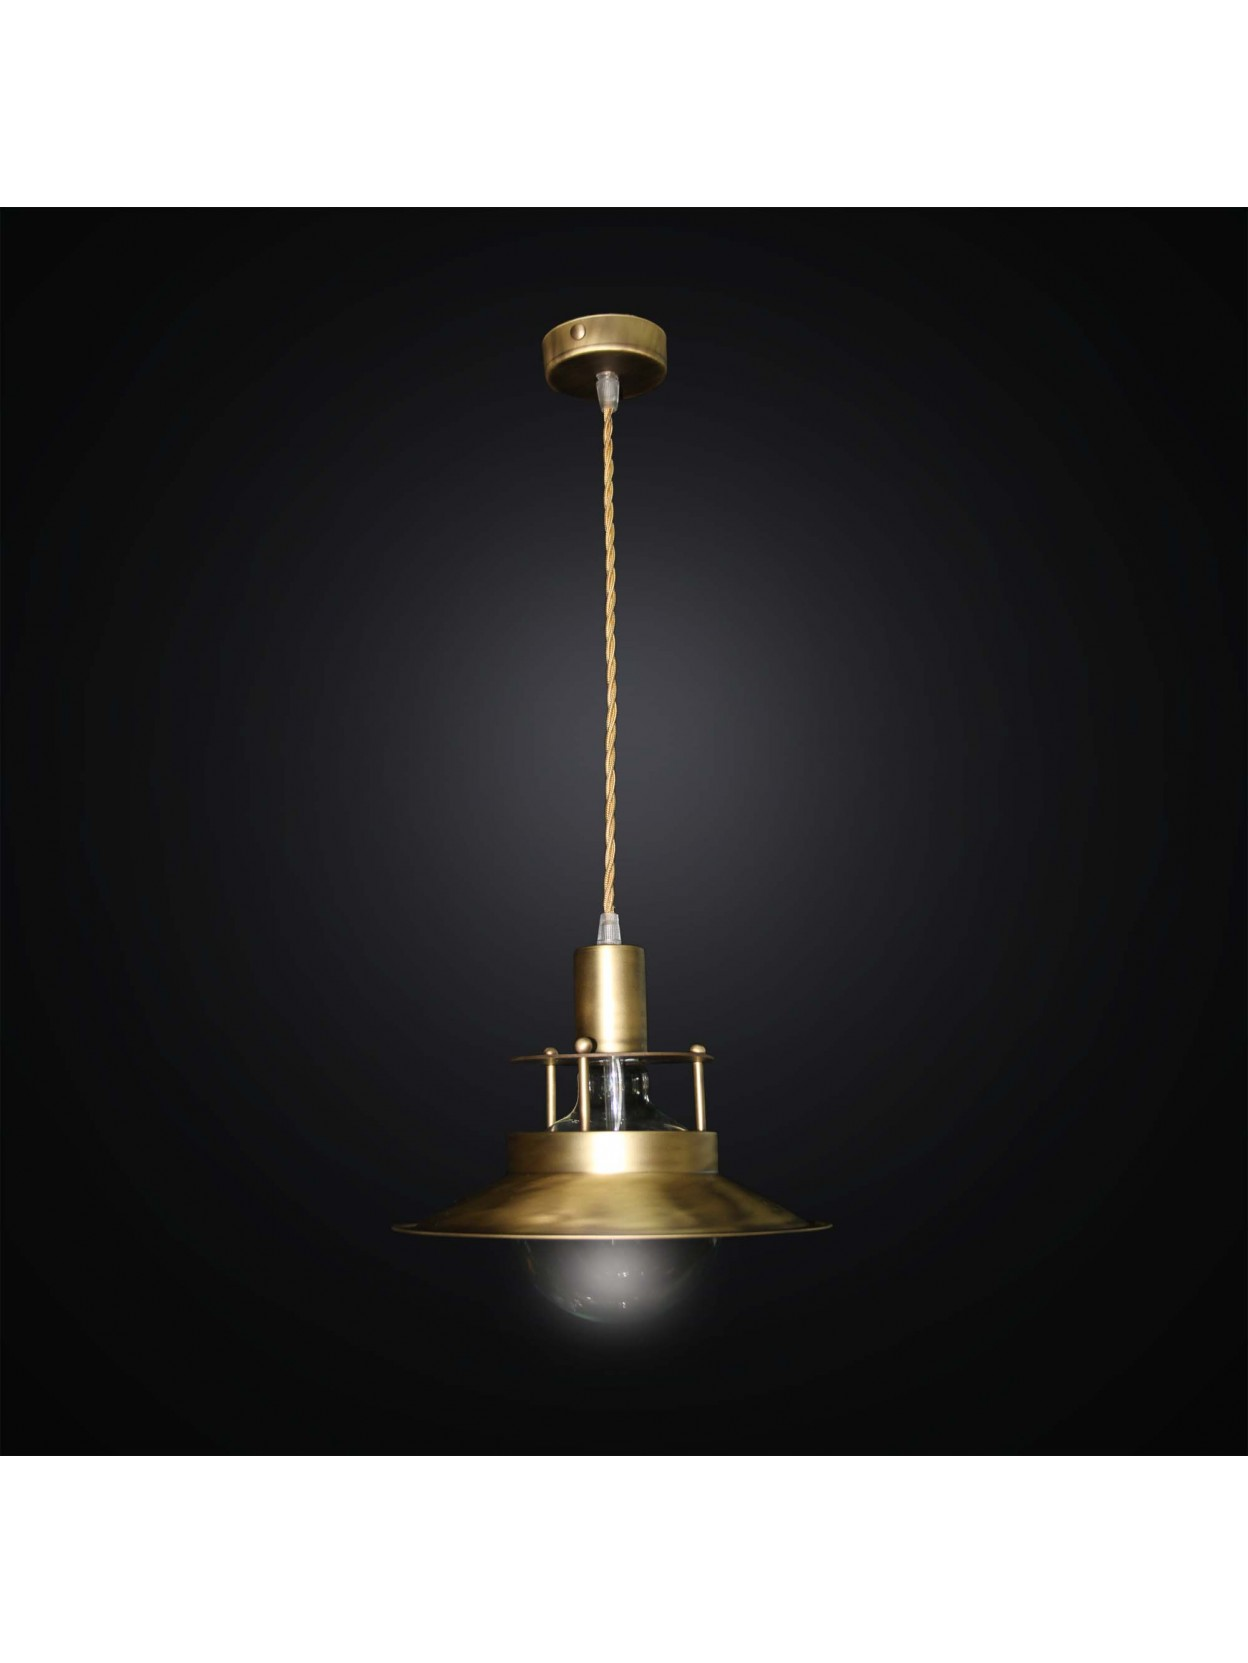 Rustic design pendant light 1 light BGA 2814 / S25 brass